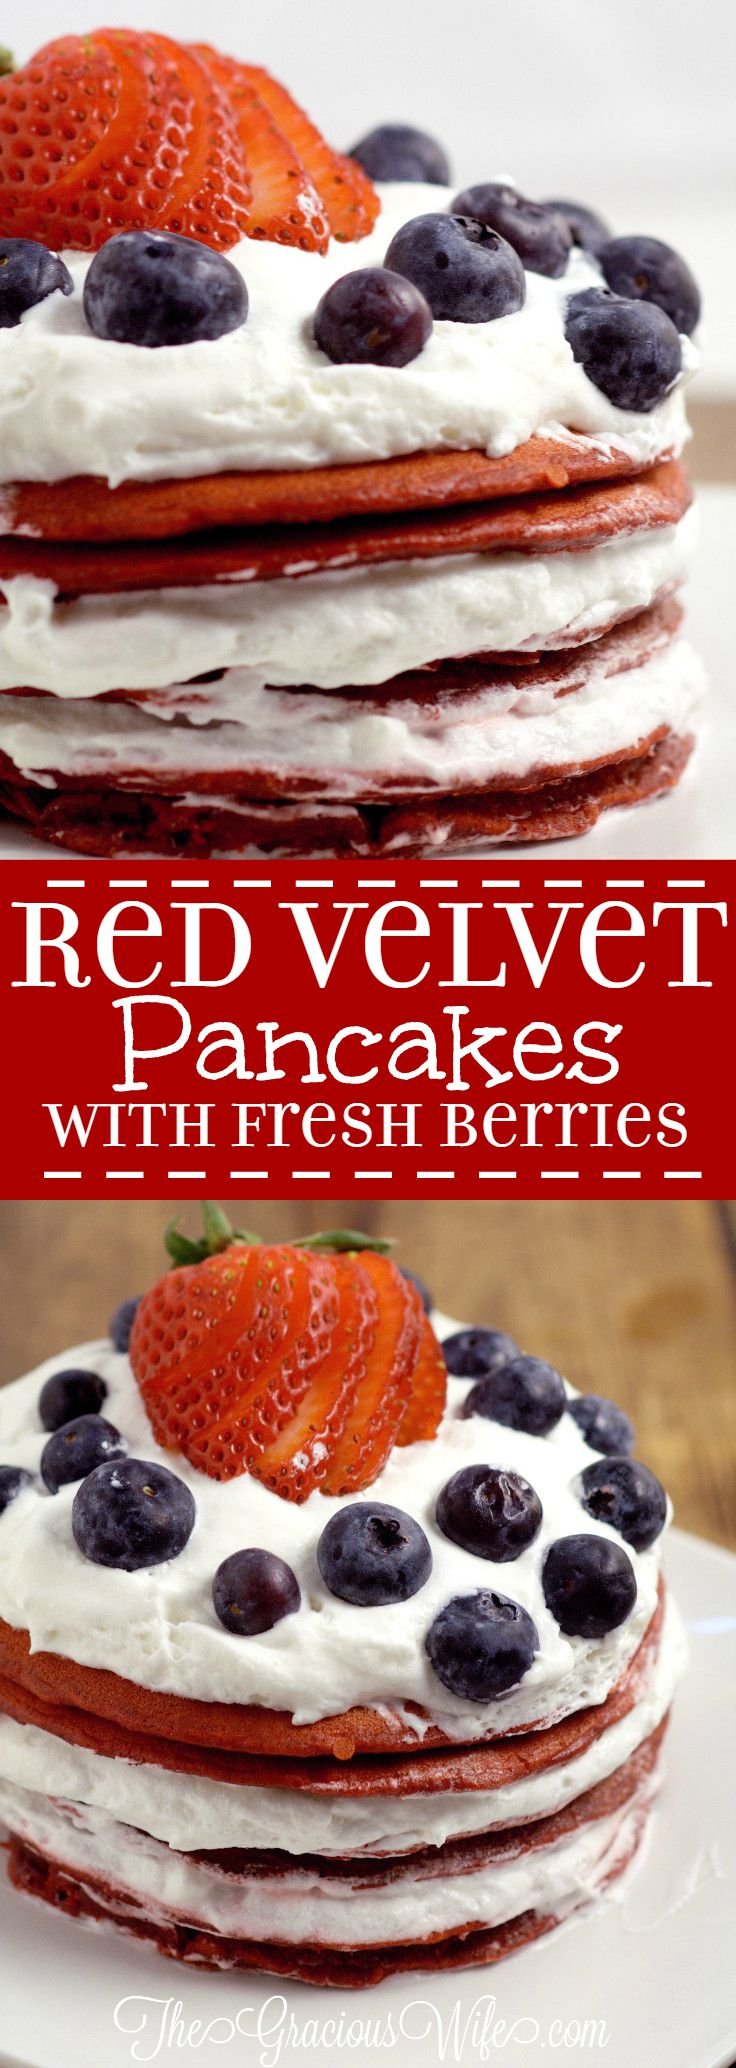 Red Velvet Pancakes Recipe with fresh berries - a delicious breakfast recipe with red velvet pancakes, whipped cream, and fresh berries. The patriotic red white and blue are super cute for a 4th of July breakfast food idea too!